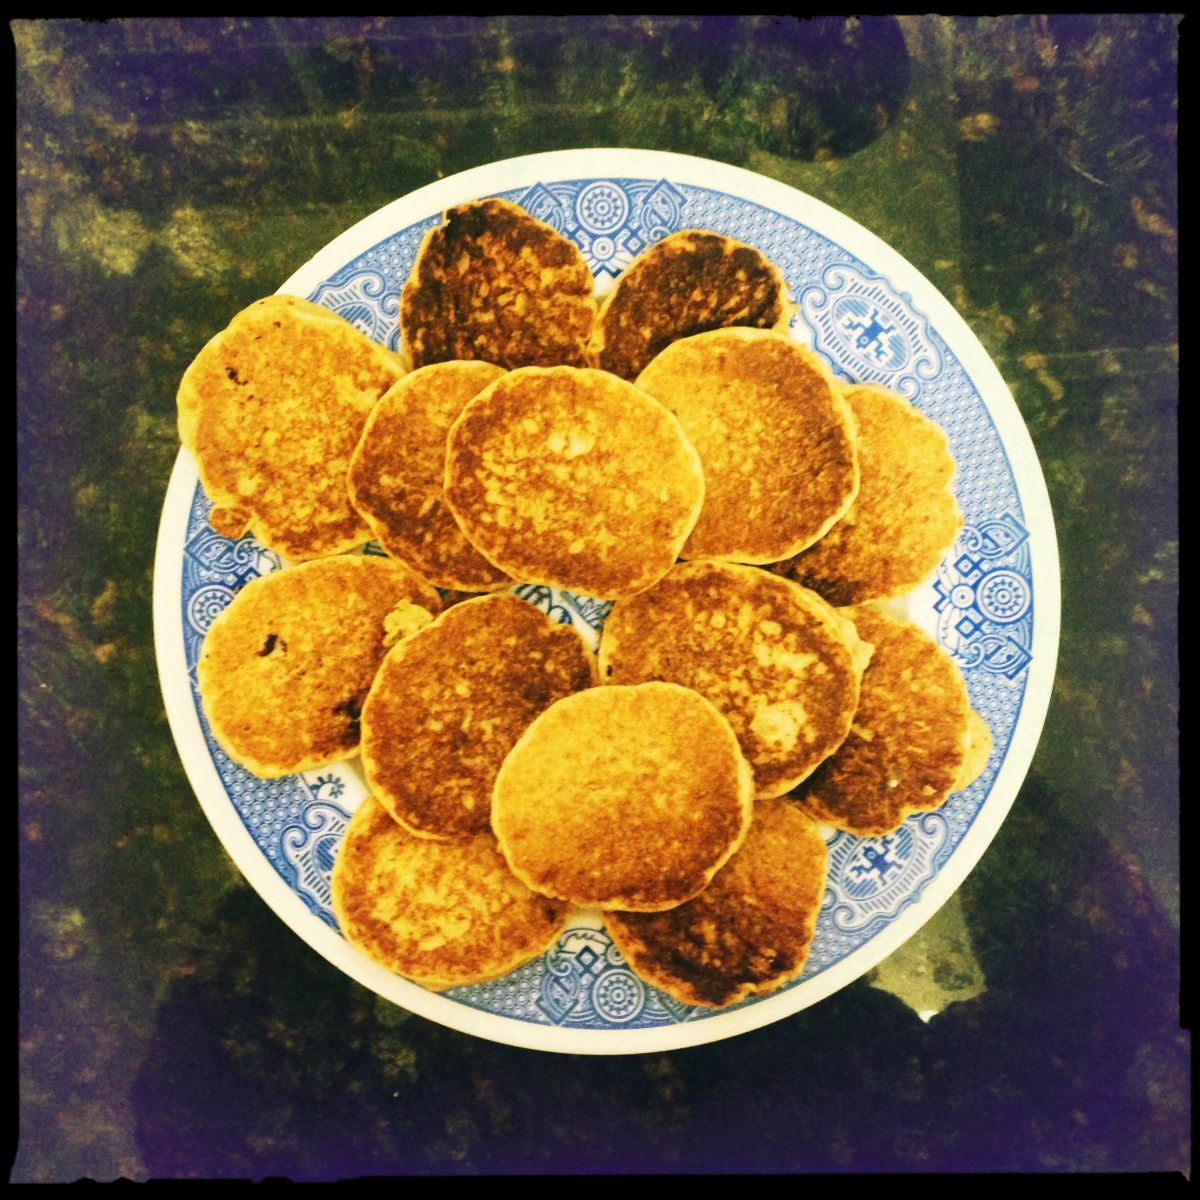 image of a plate of pancakes